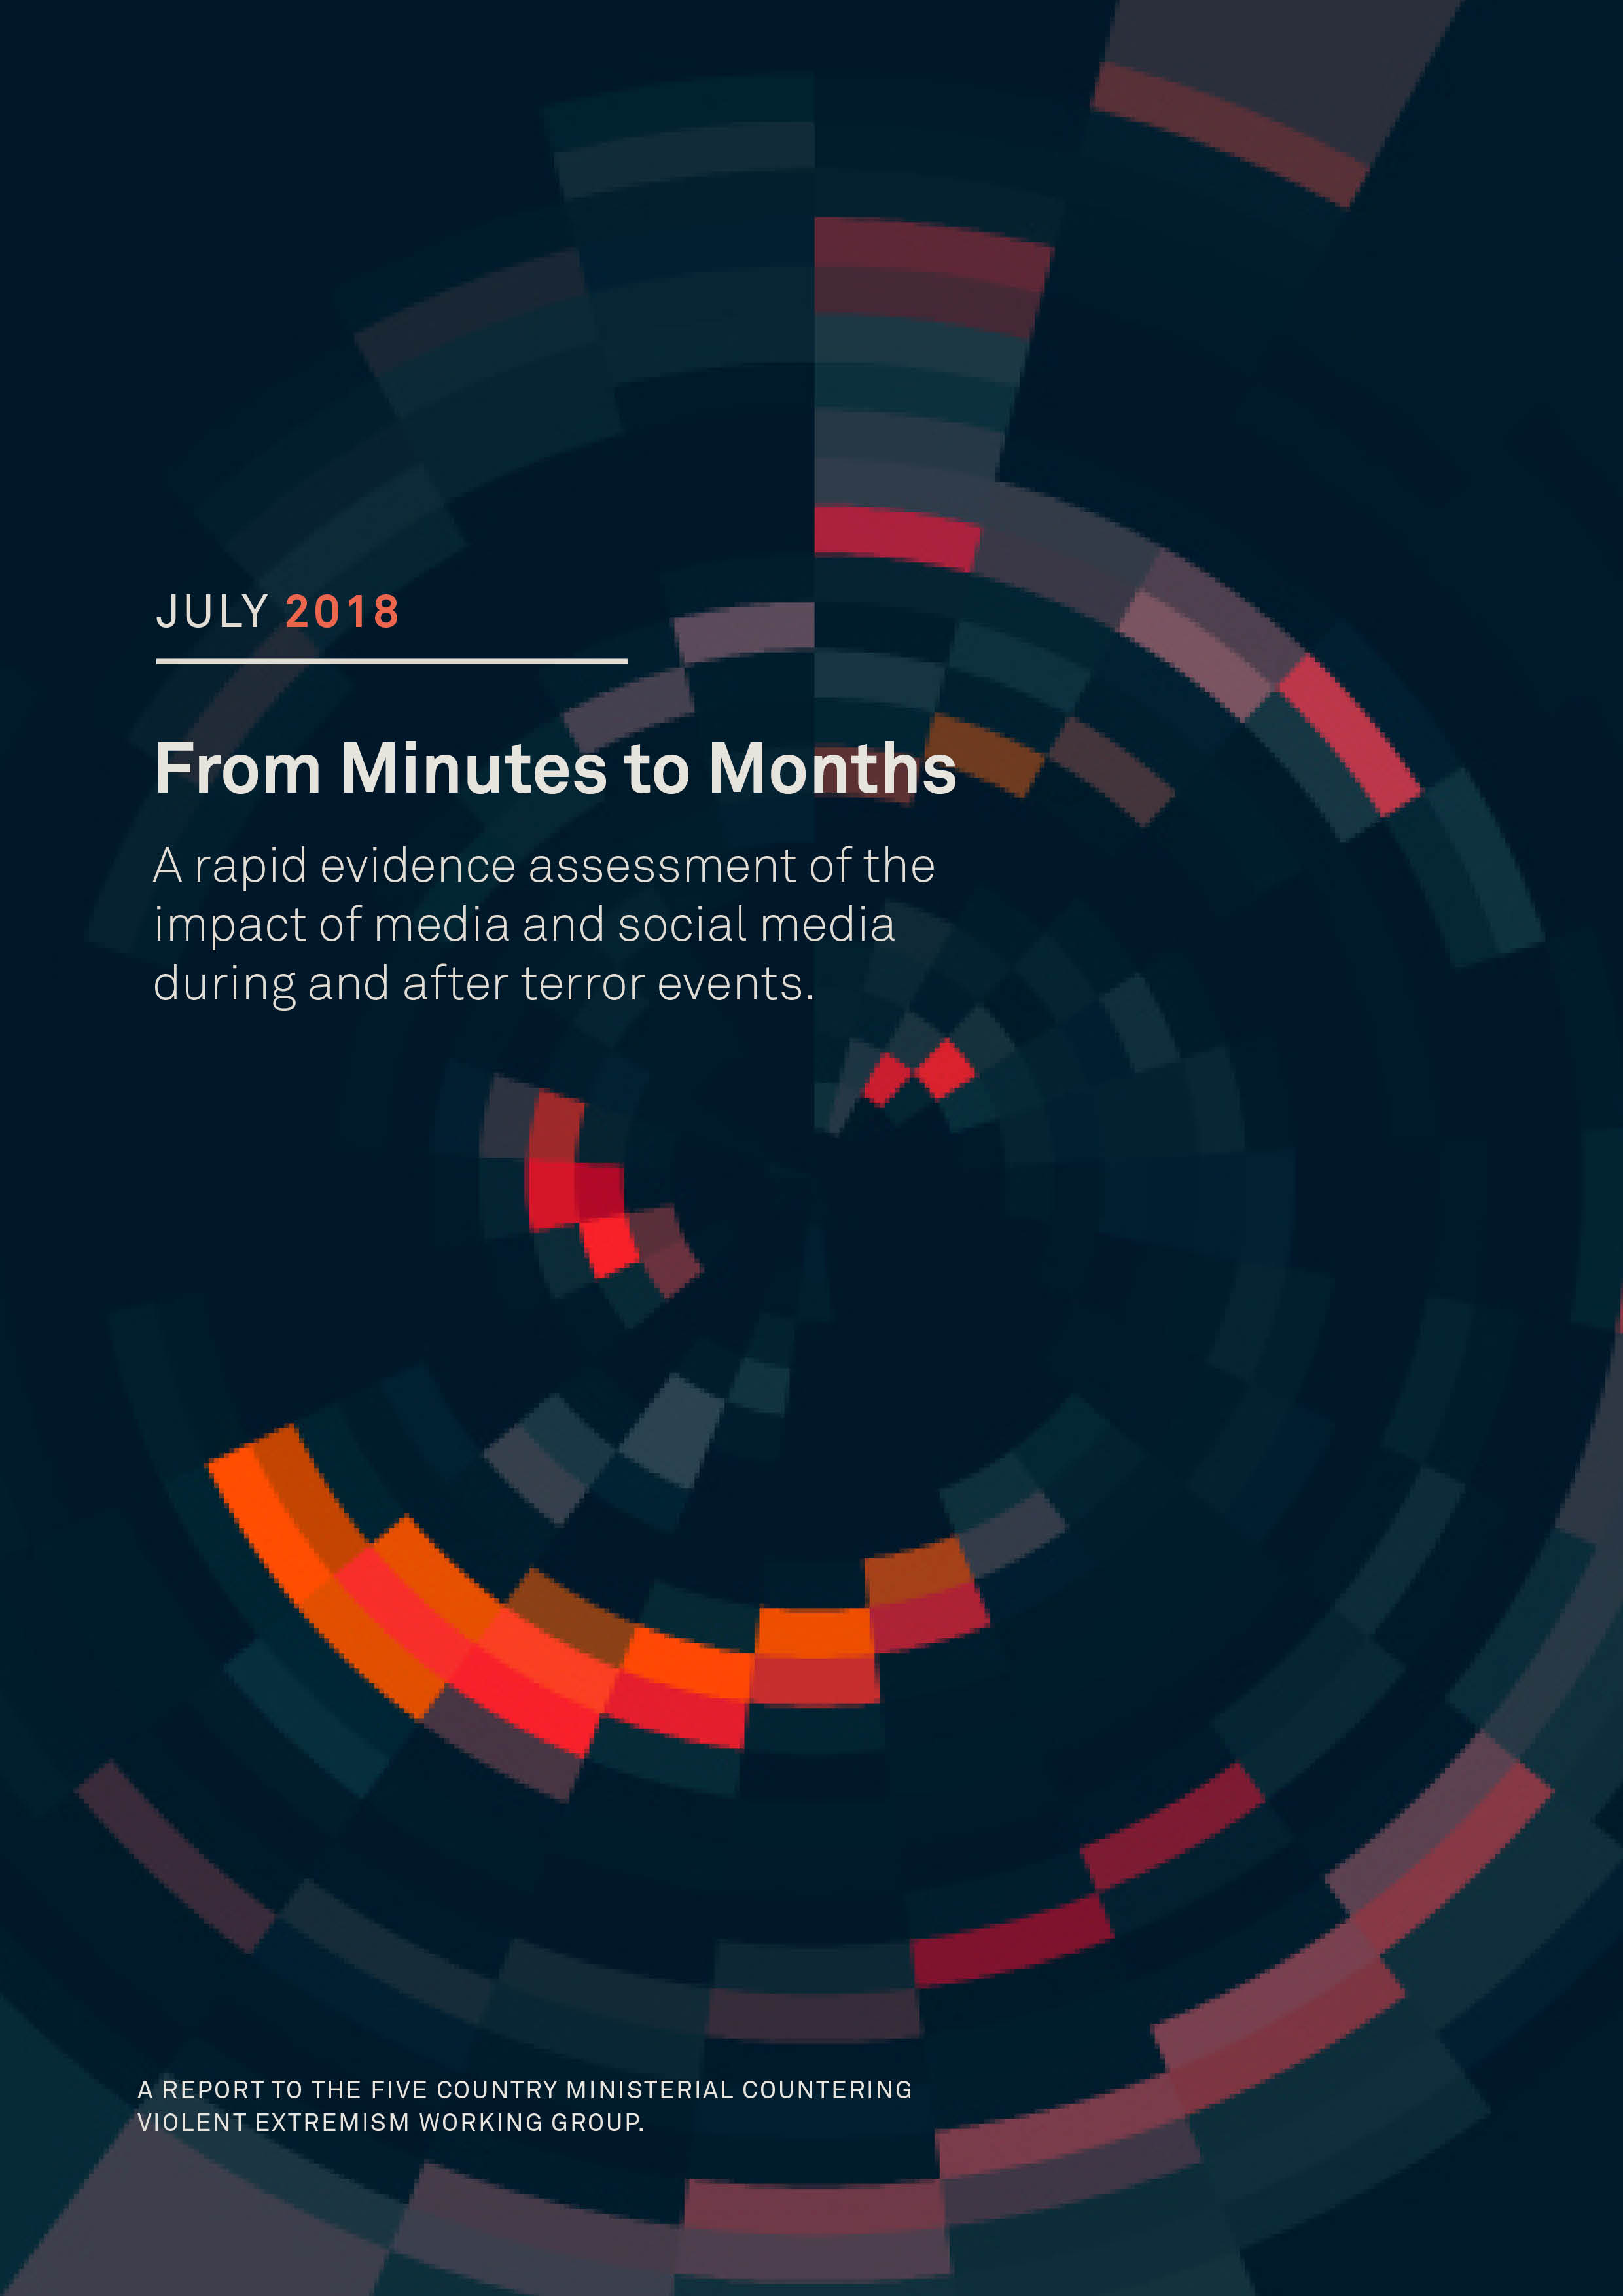 From Minutes to Months - A rapid evidence assessment of the impact of media and social media during and after terror events